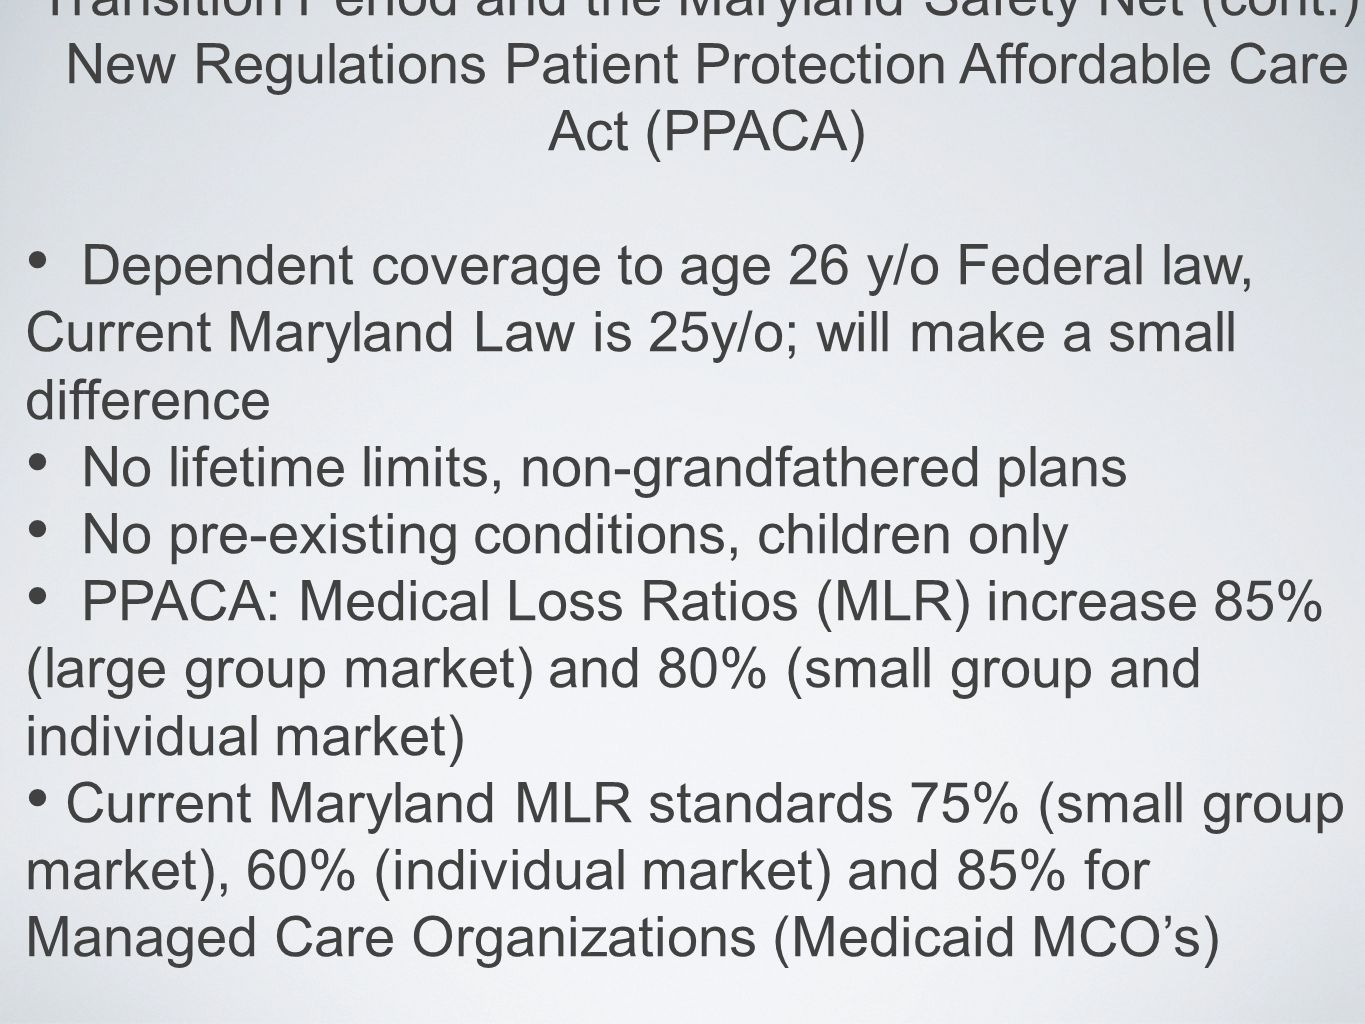 Transition Period and the Maryland Safety Net (cont.); New Regulations Patient Protection Affordable Care Act (PPACA) Dependent coverage to age 26 y/o Federal law, Current Maryland Law is 25y/o; will make a small difference No lifetime limits, non-grandfathered plans No pre-existing conditions, children only PPACA: Medical Loss Ratios (MLR) increase 85% (large group market) and 80% (small group and individual market) Current Maryland MLR standards 75% (small group market), 60% (individual market) and 85% for Managed Care Organizations (Medicaid MCO's)